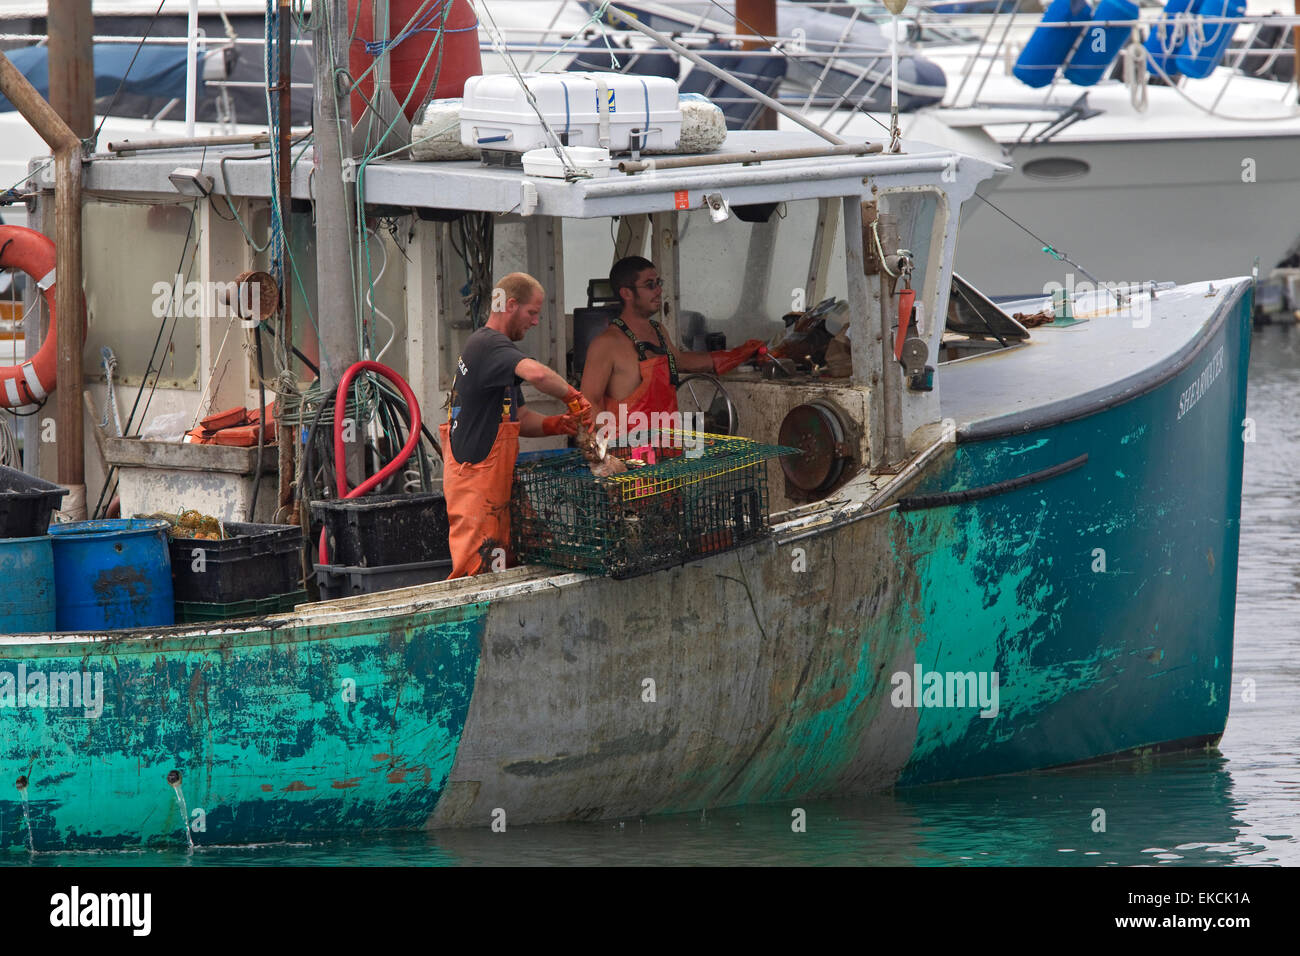 Maine lobster fishermen on lobster fishing boat stock for Lobster fishing in maine